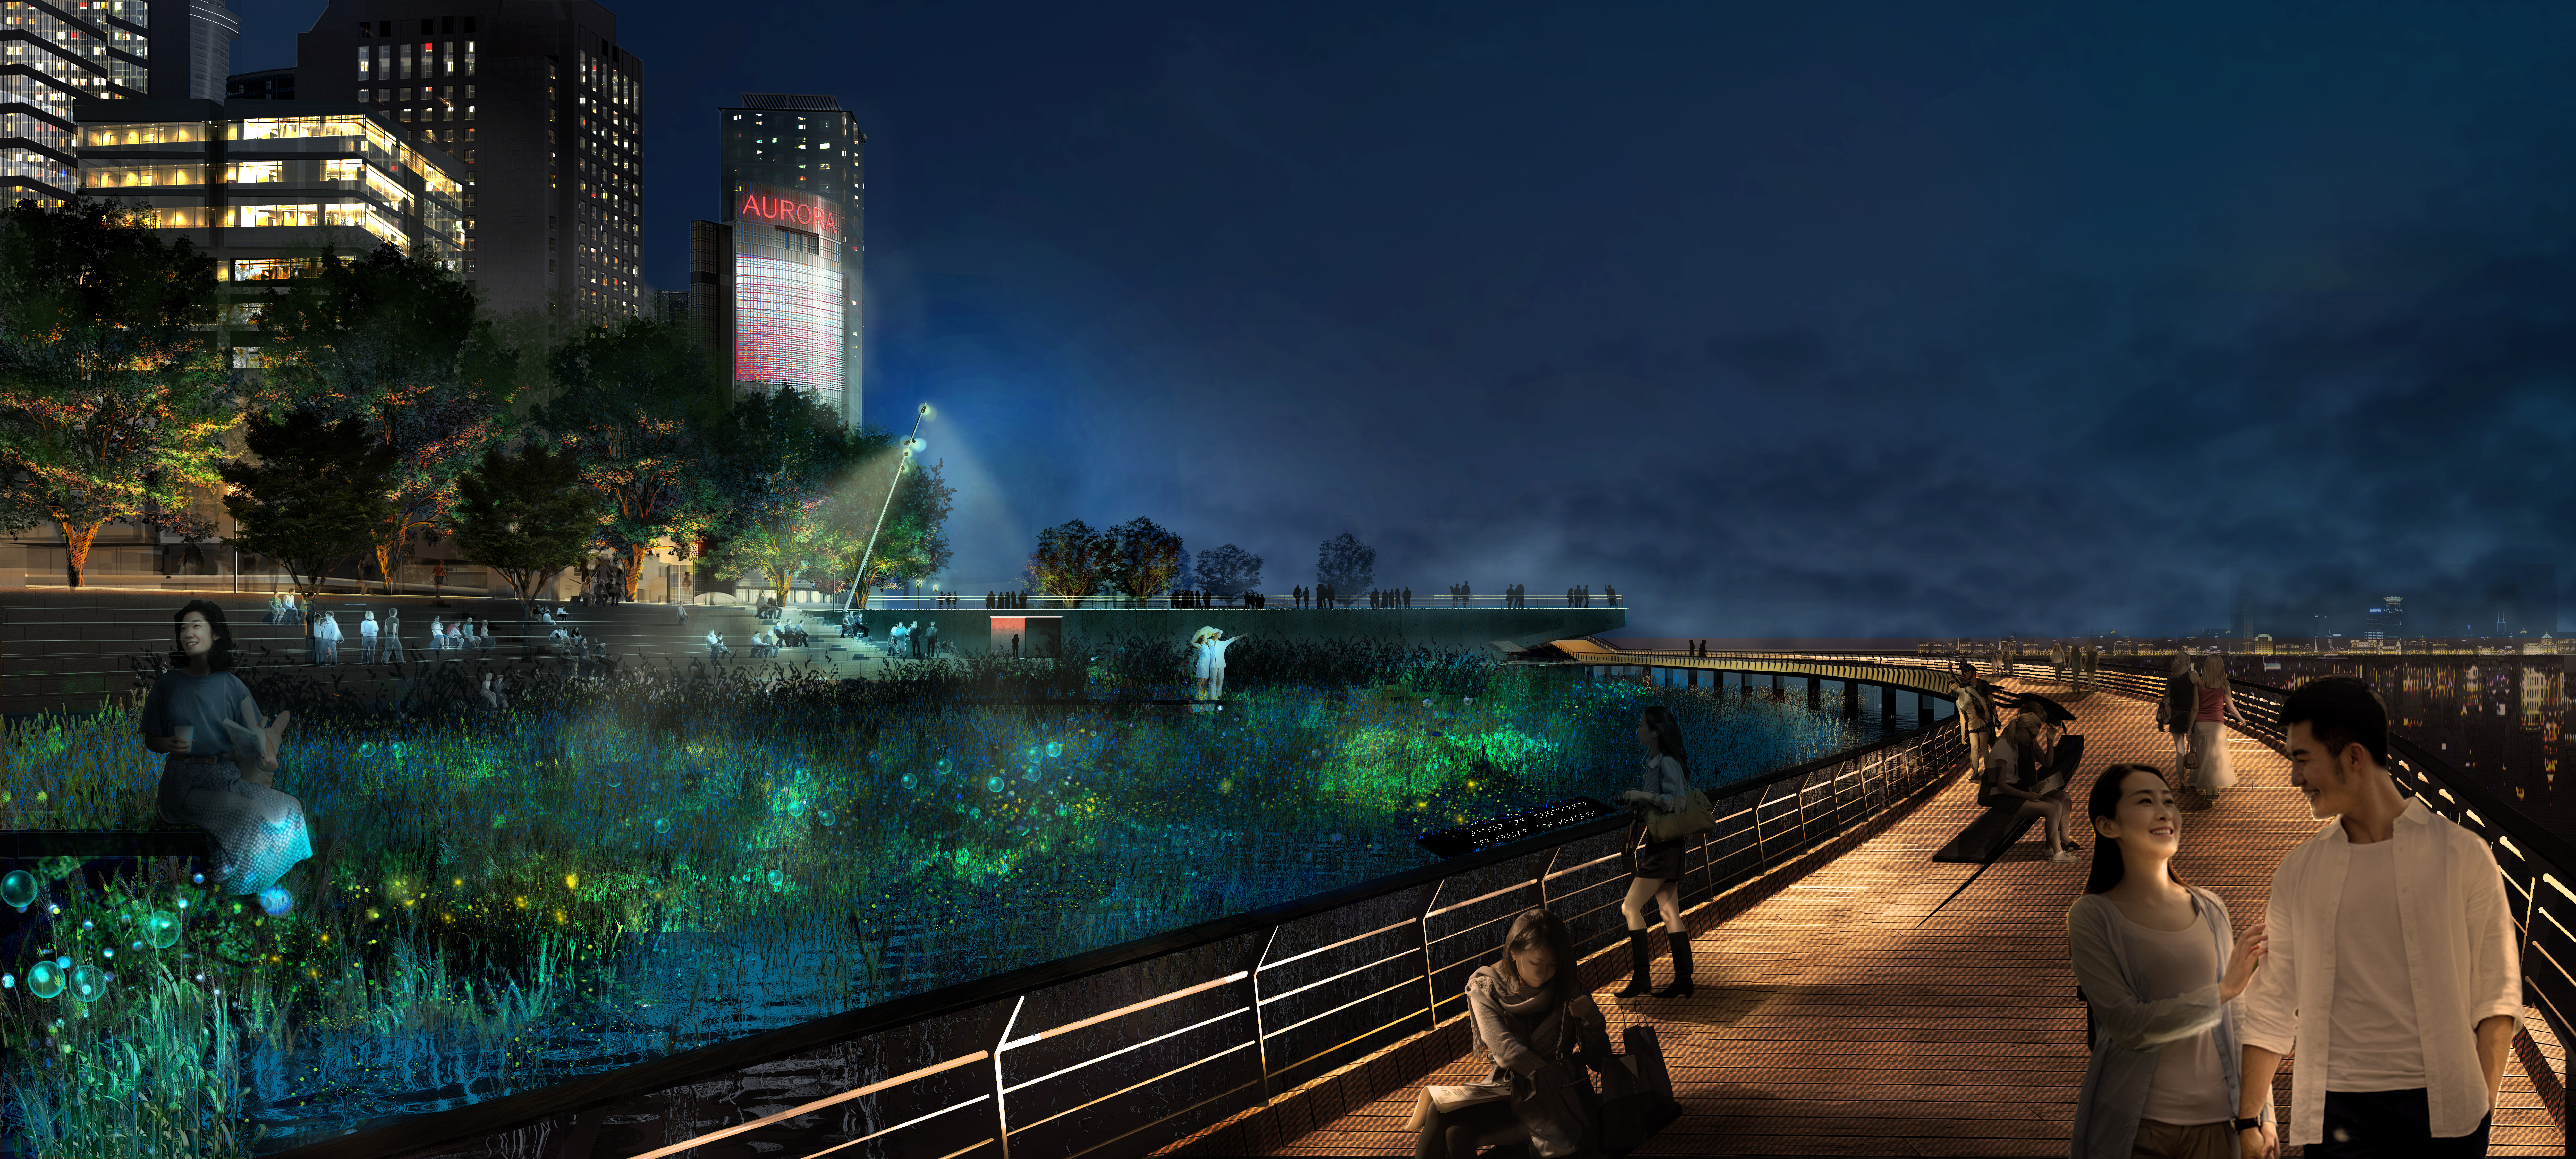 Shanghai, Huang Pu River. Rendering di progetto (courtesy: Fanny Guerard, Agence CONCEPTO)